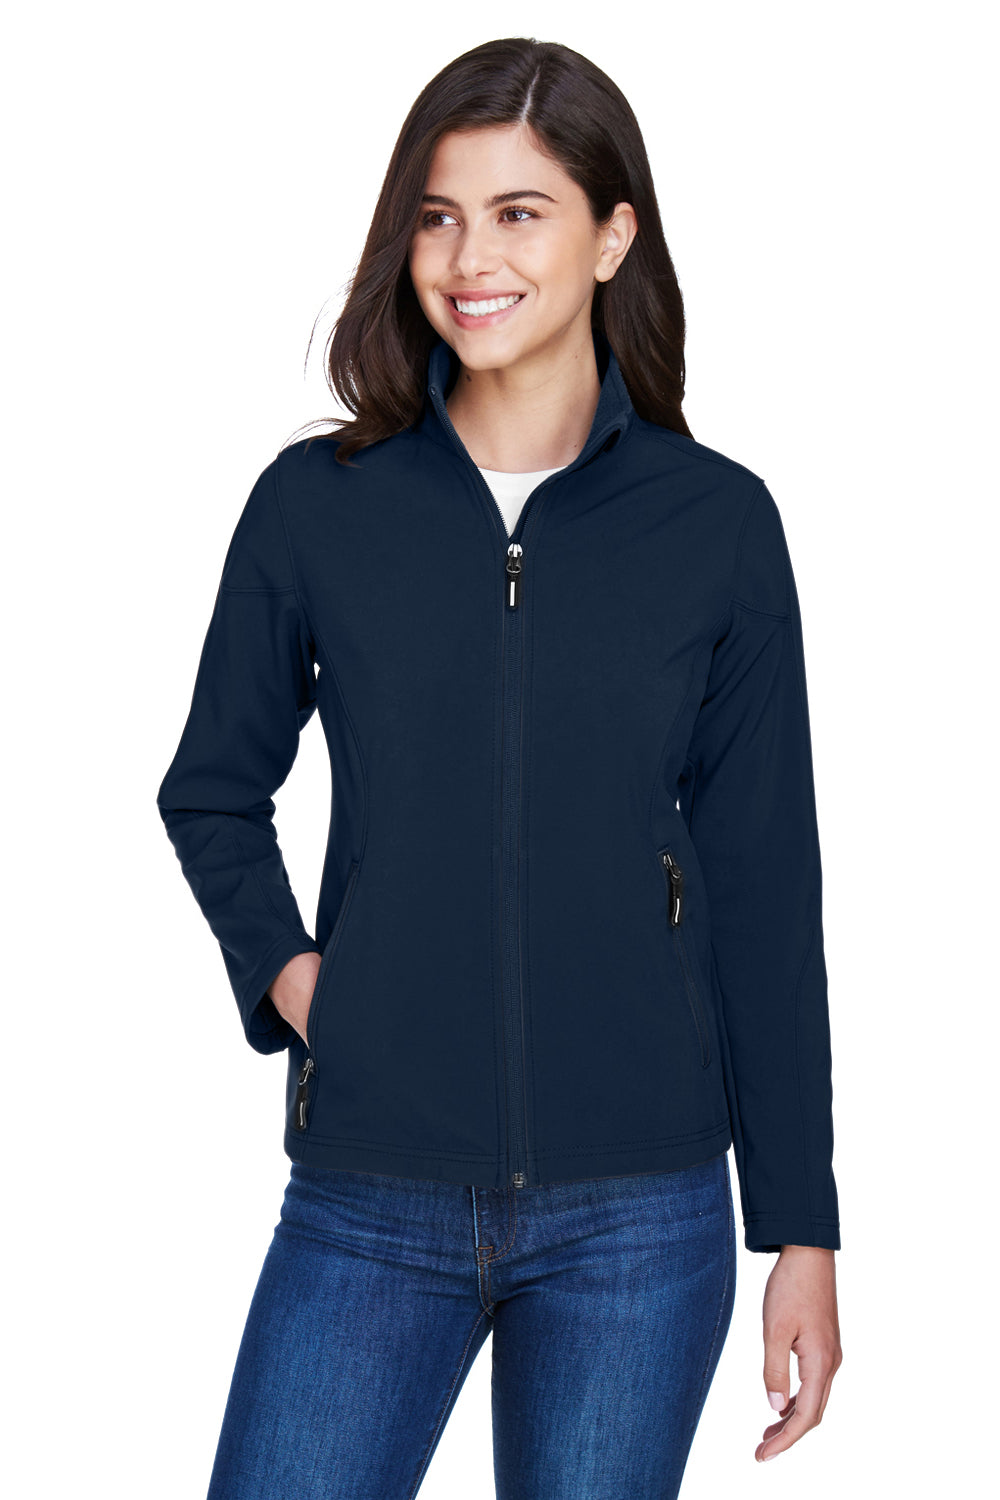 Core 365 78184 Womens Cruise Water Resistant Full Zip Jacket Navy Blue Front